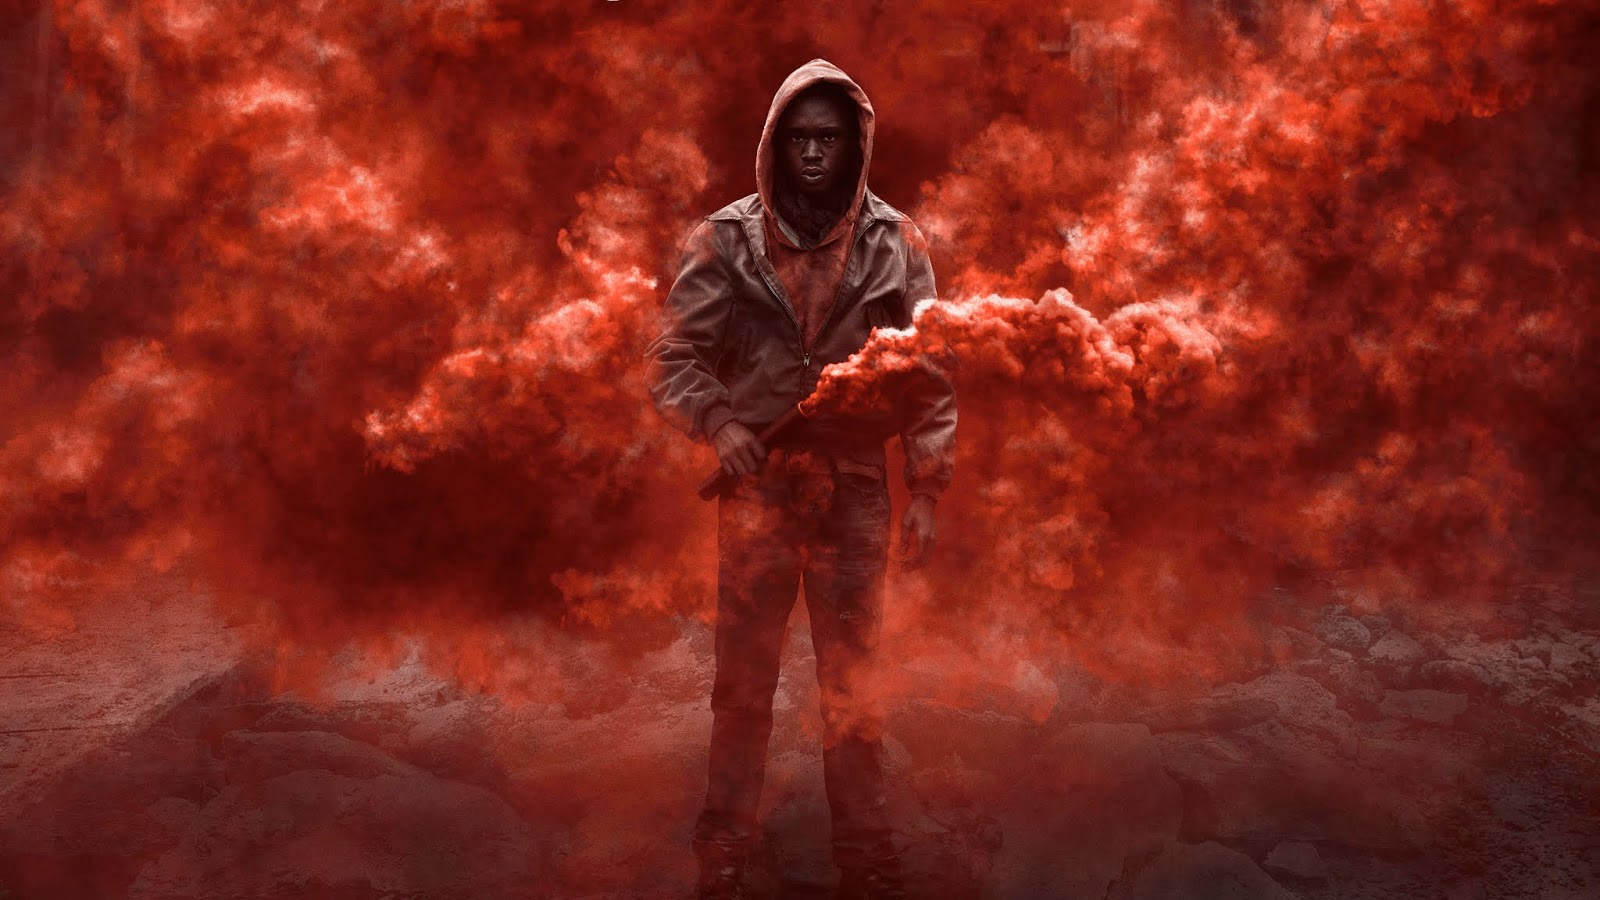 With 'Captive State', the filmmakers find some ways to try something new and interesting.